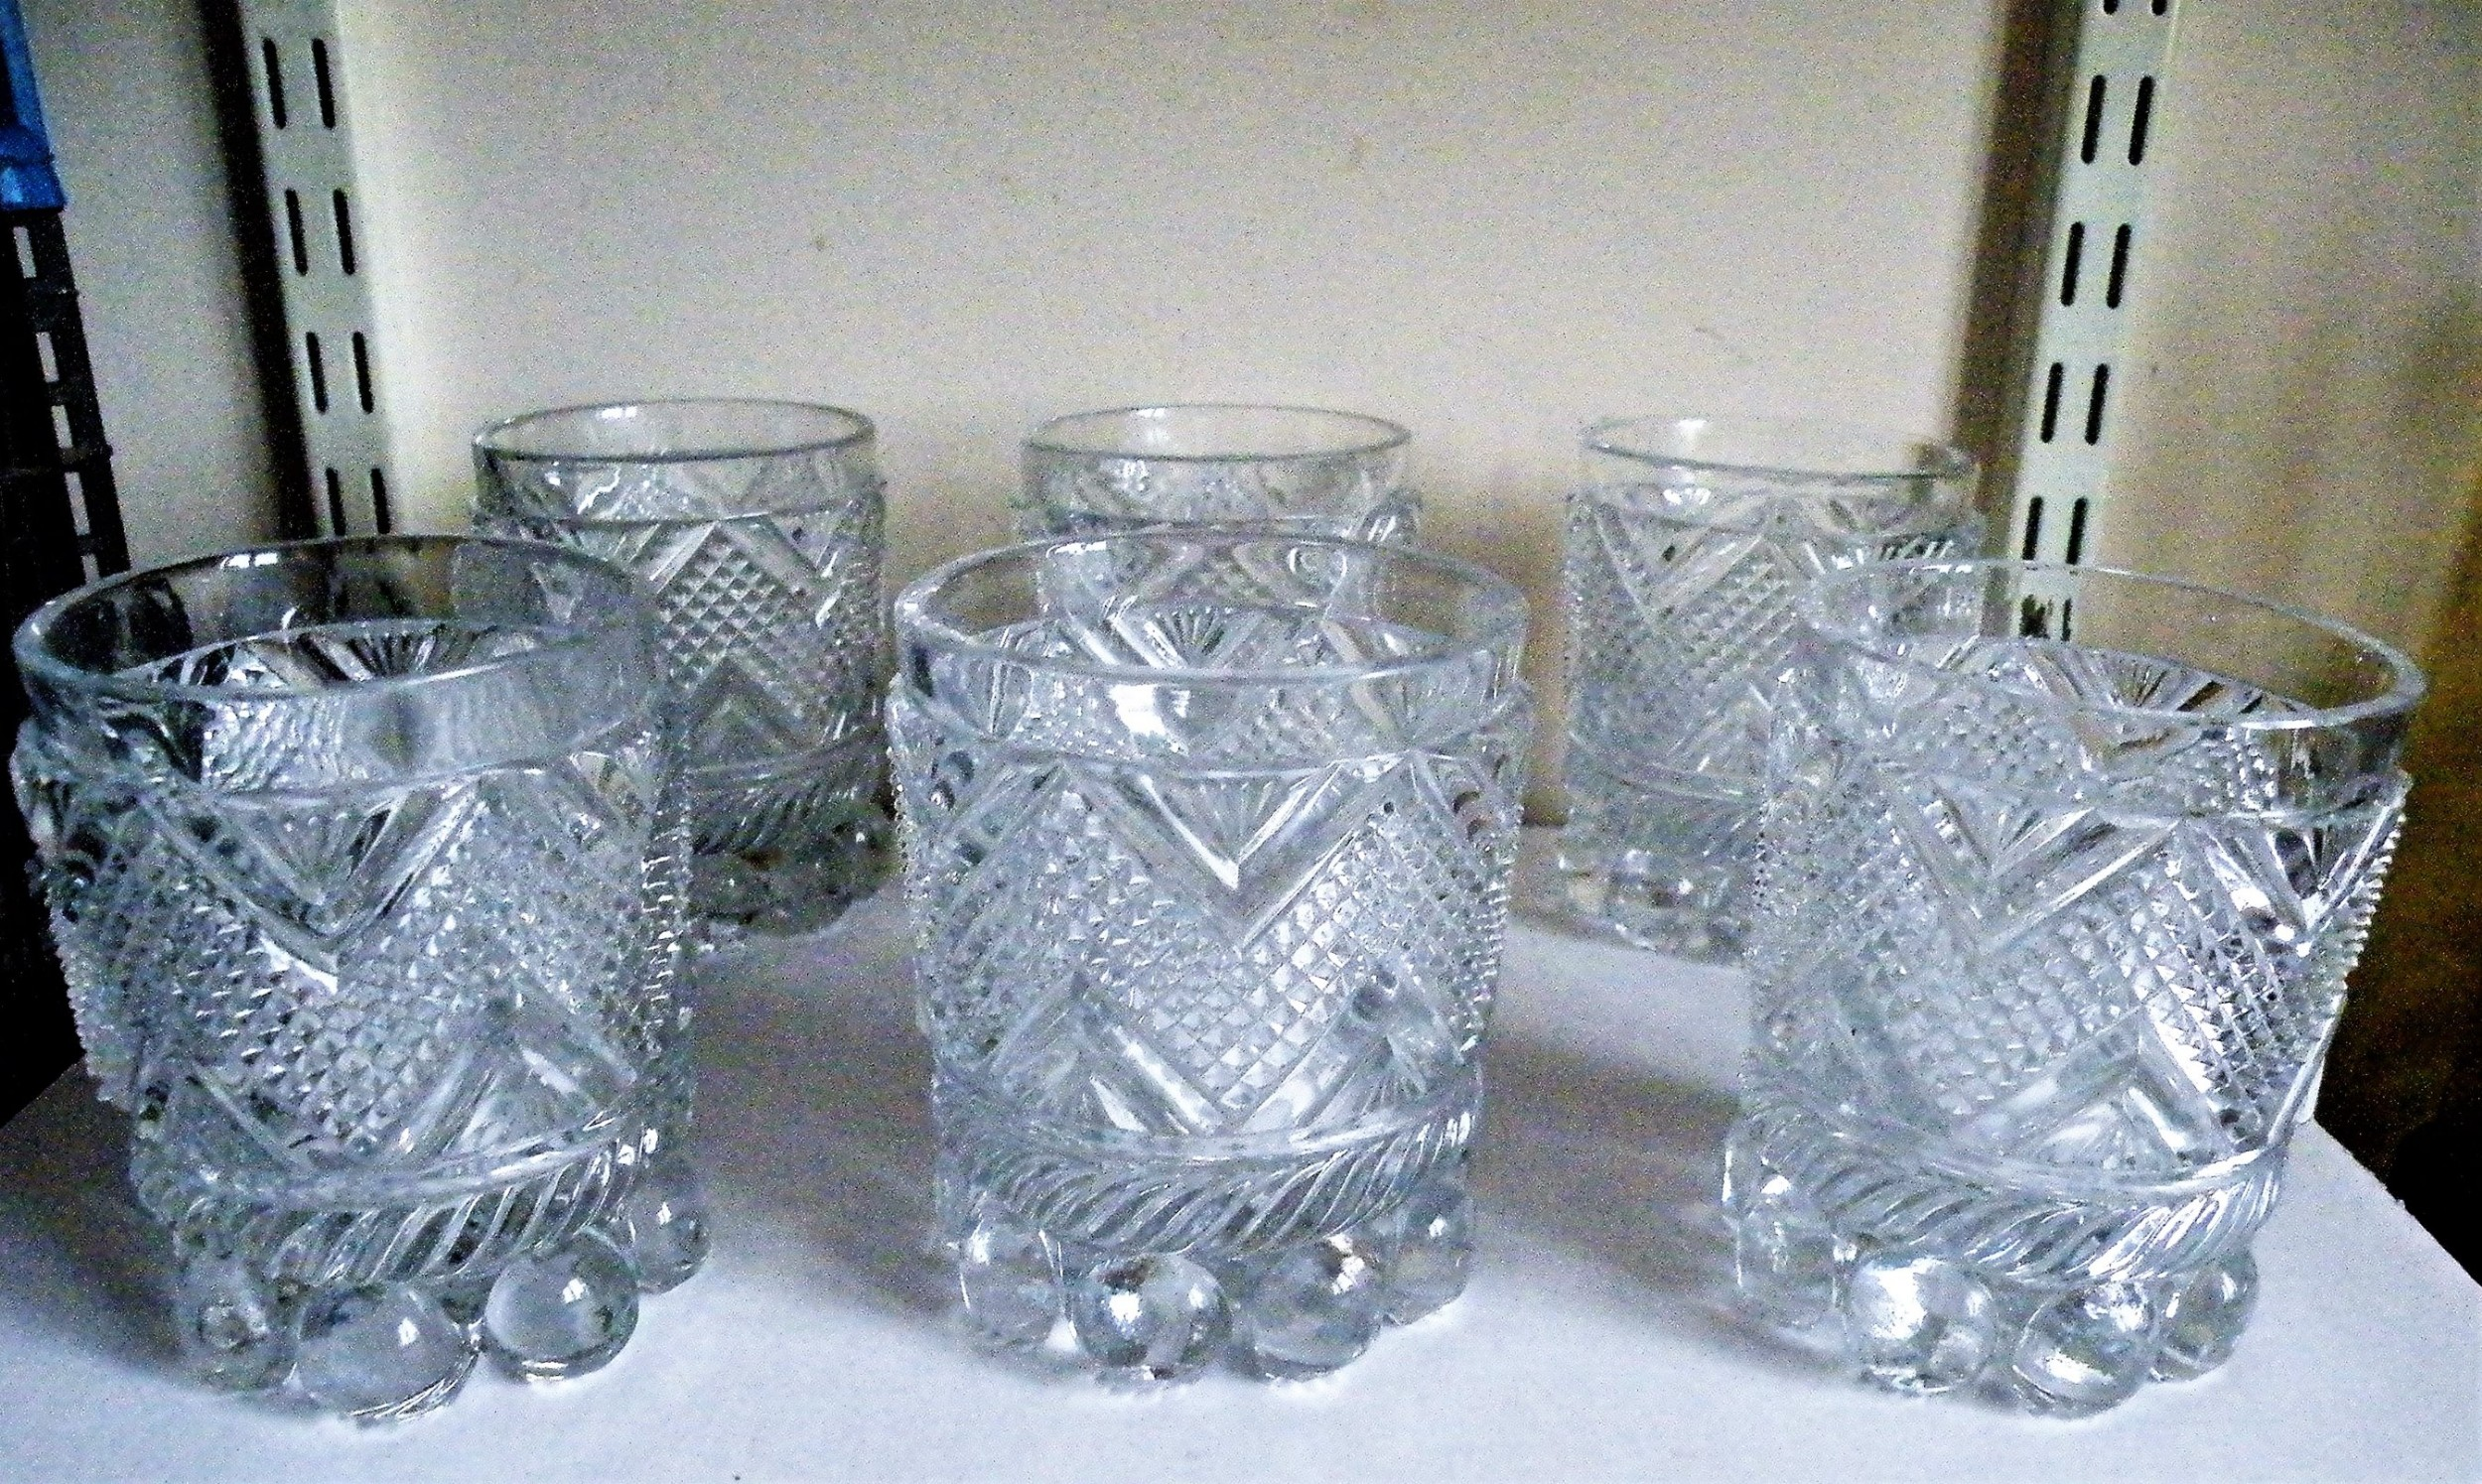 a superb and rare set of six 19th century baccarat whisky glasses